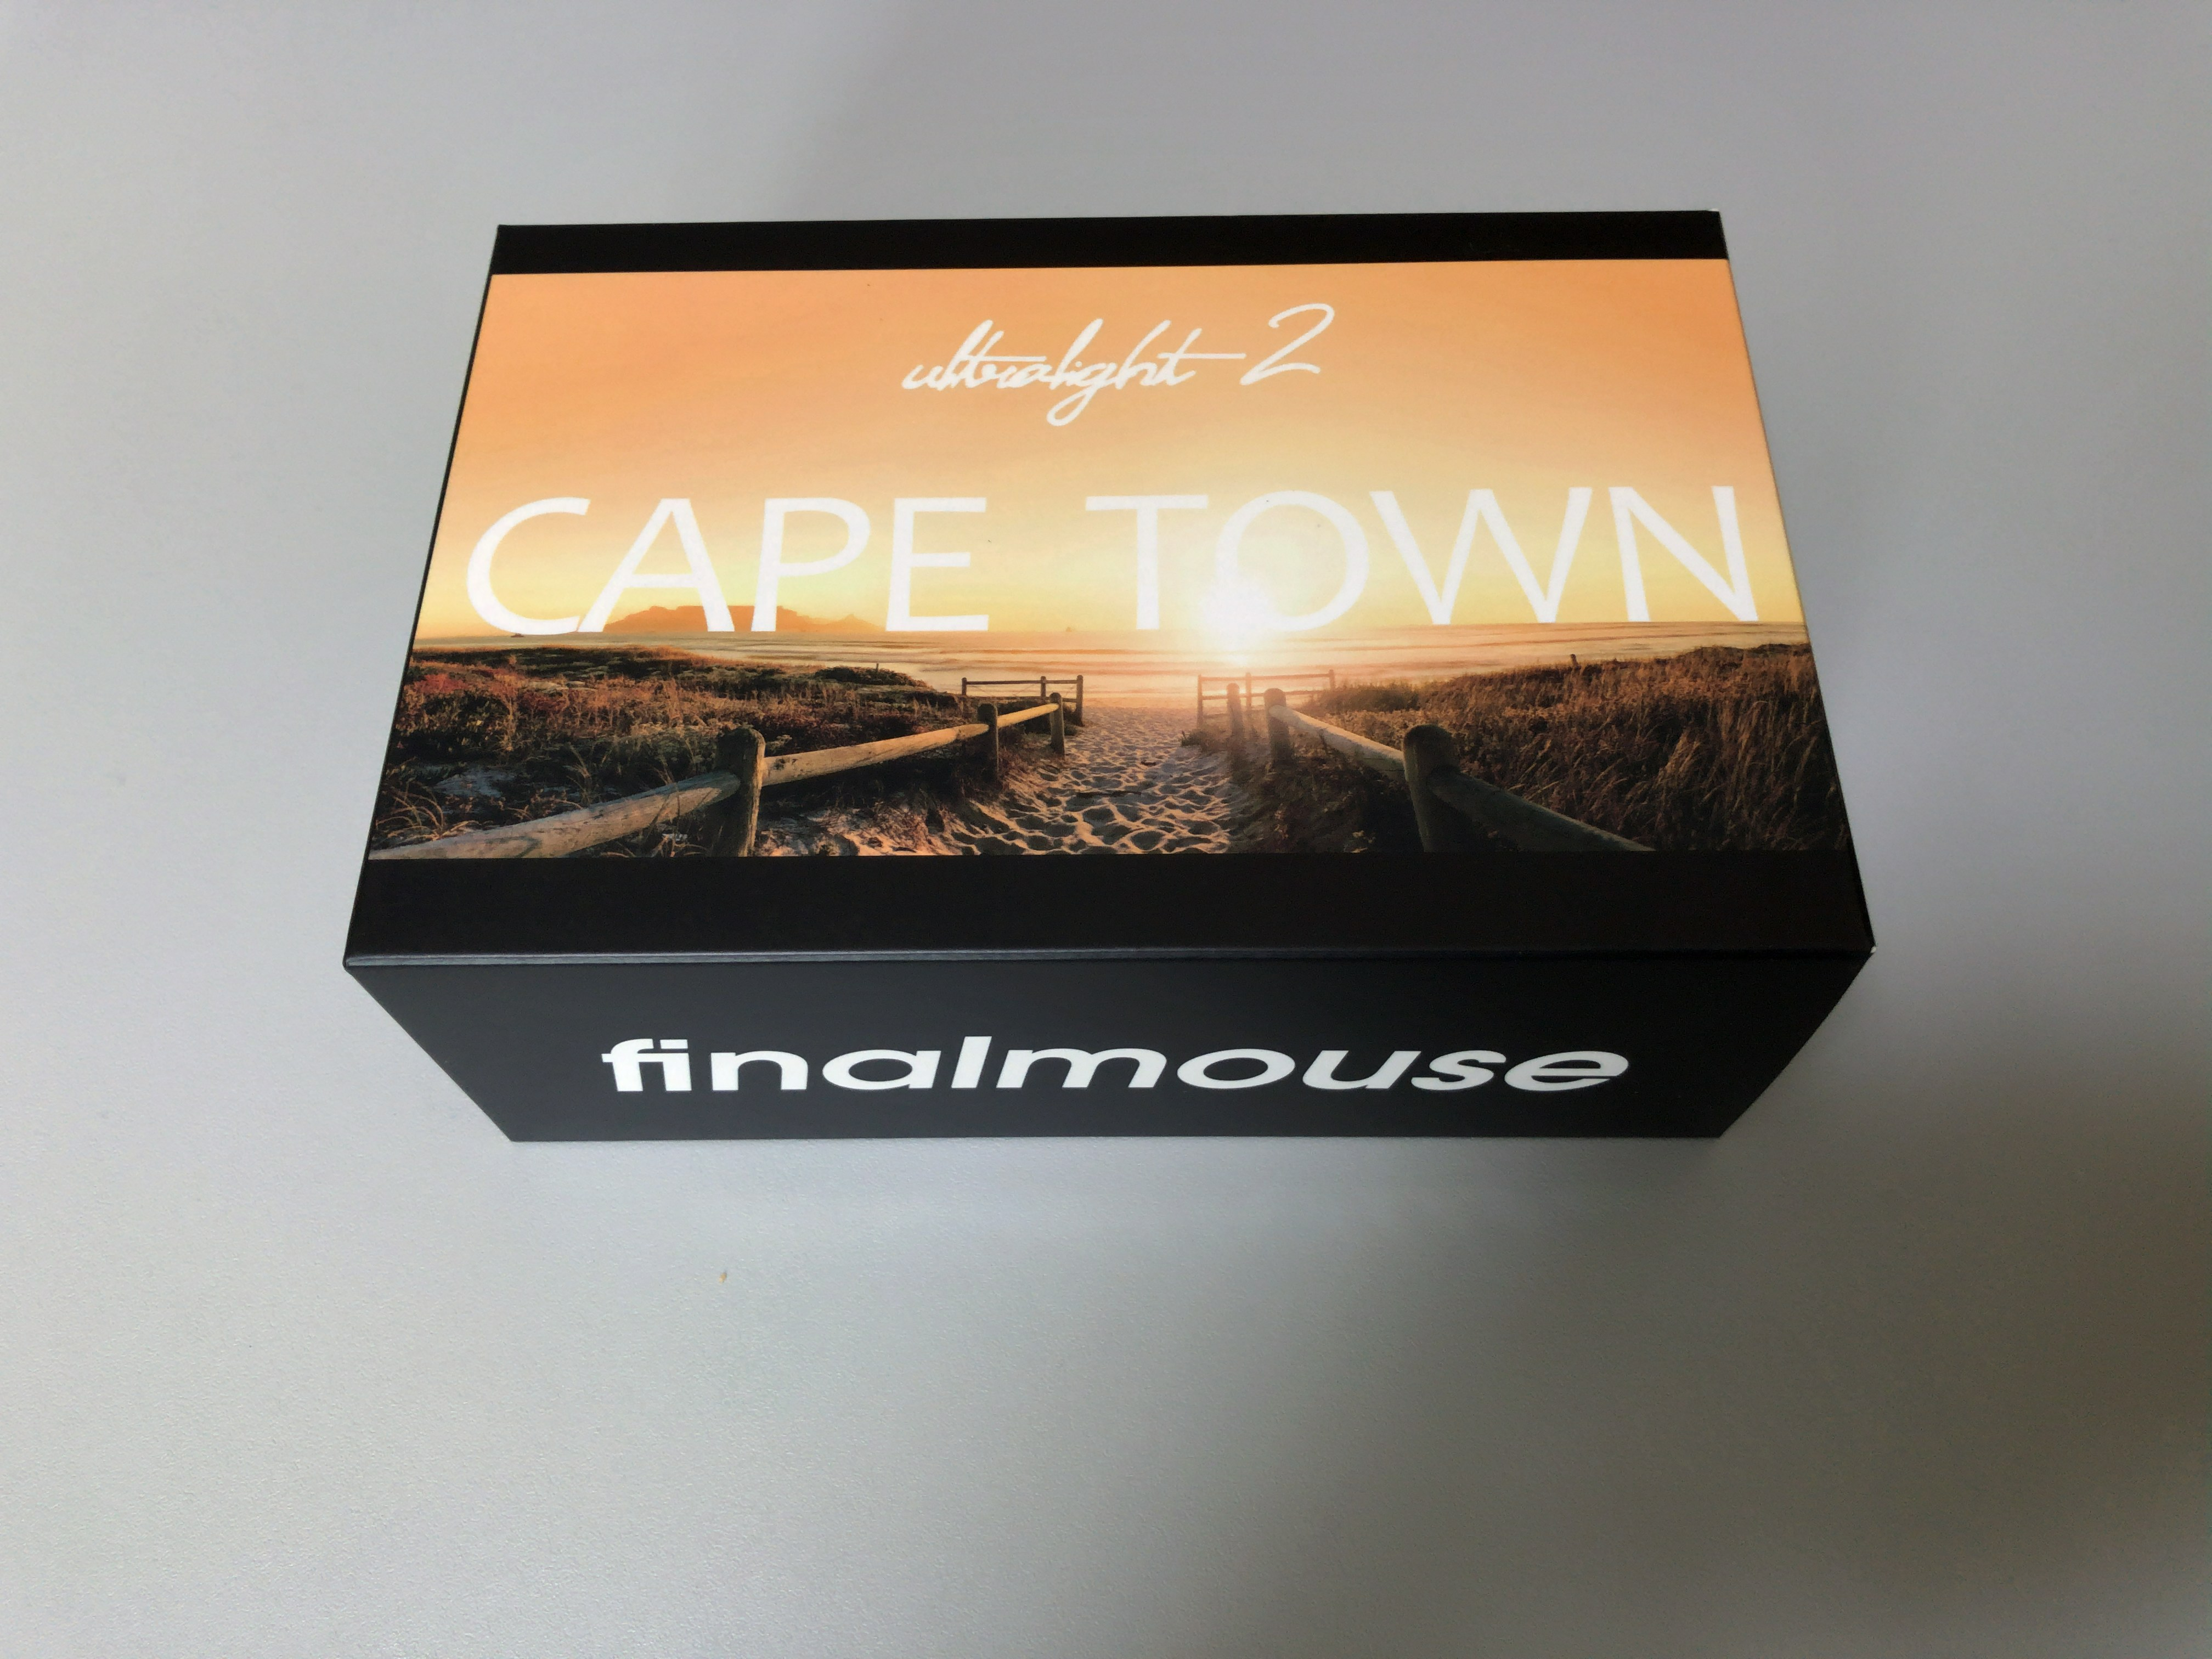 Finalmouse Ultralight 2 CAPE TOWNの箱